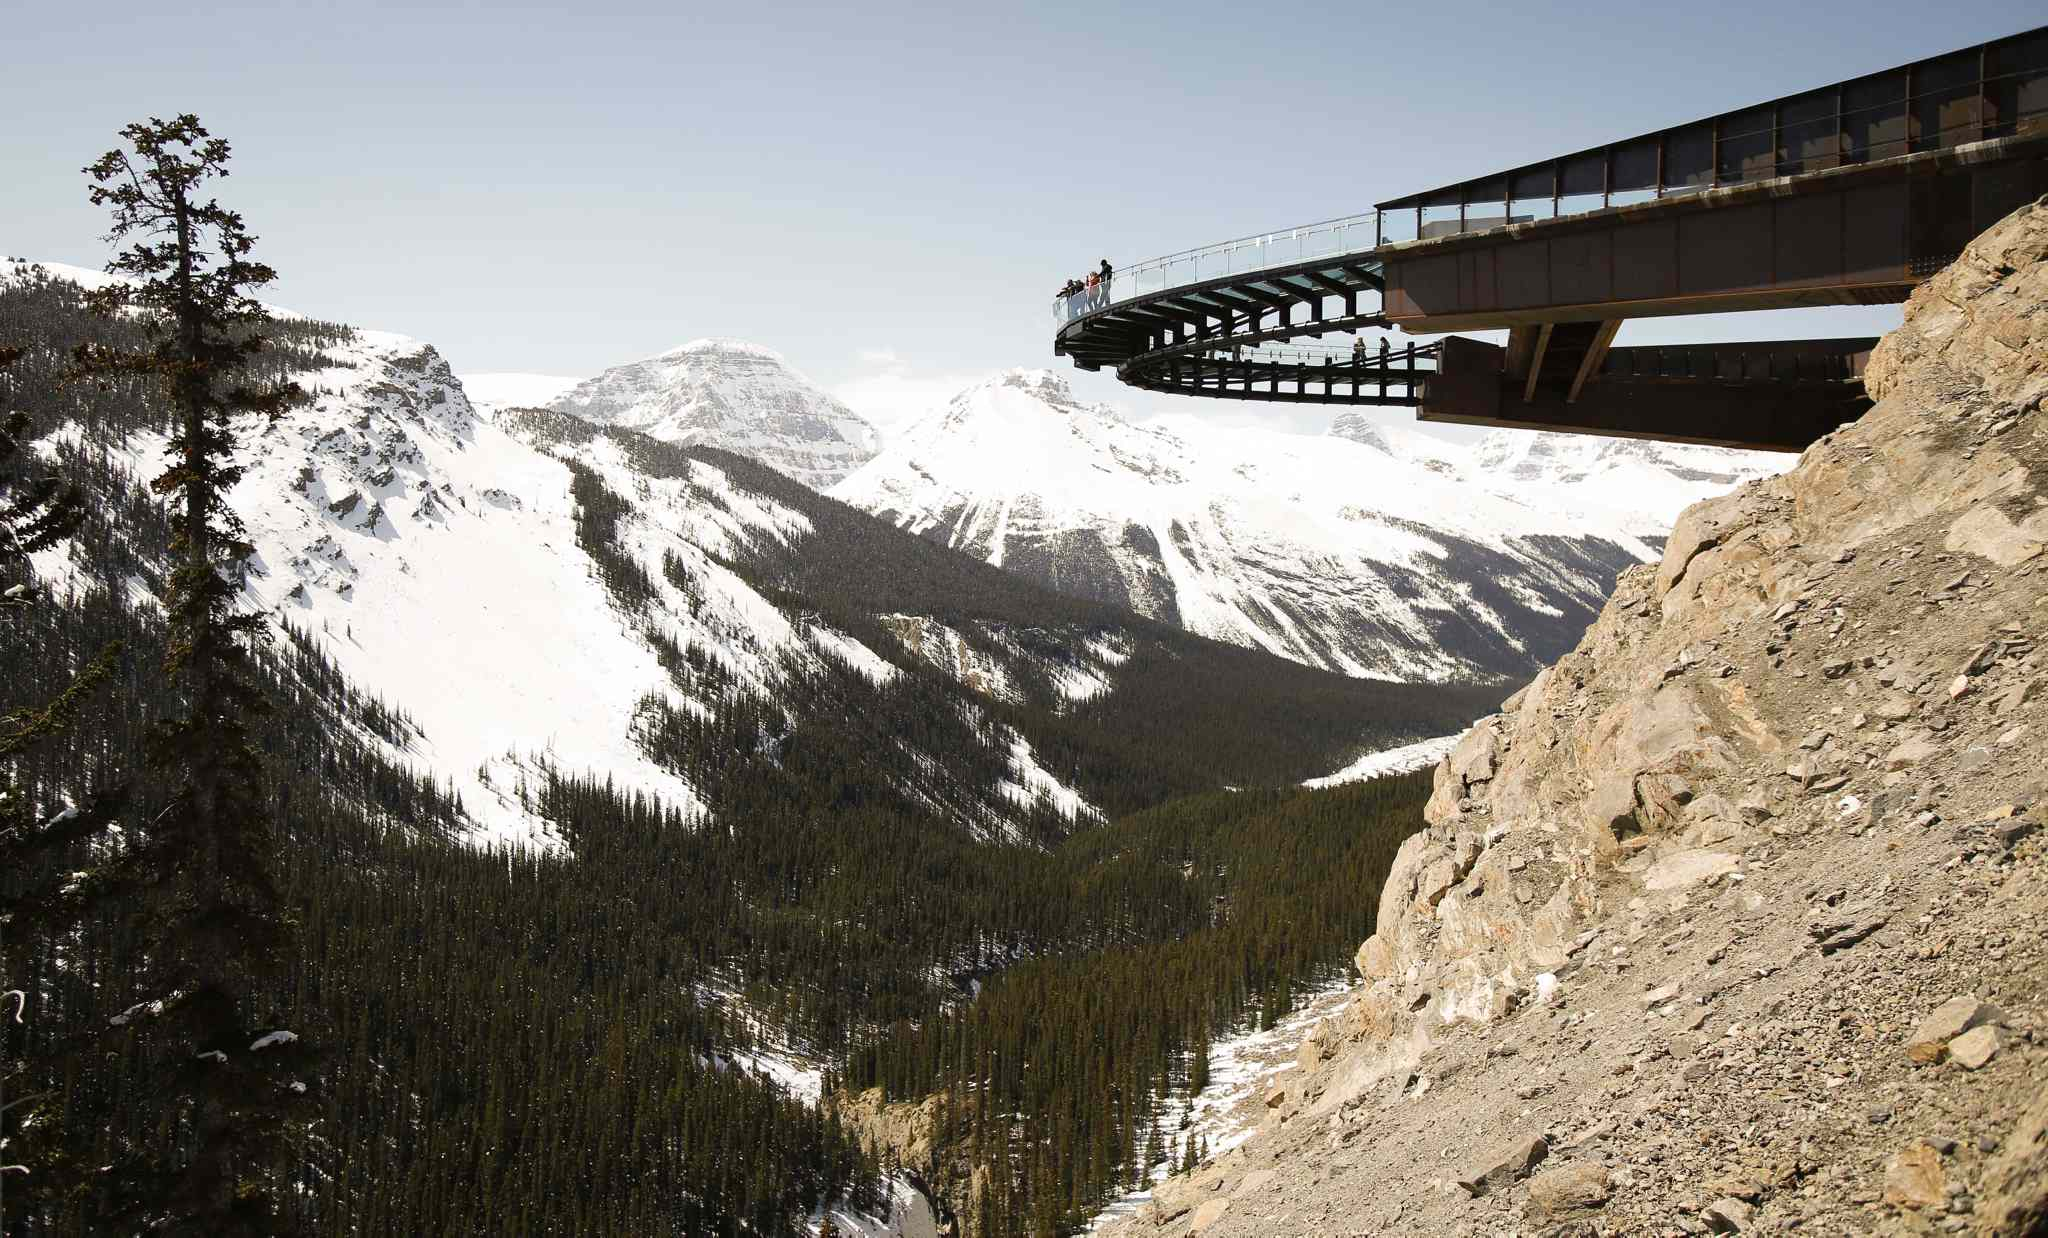 The newly opened Glacier SkyWalk near the Columbia Icefields in Jasper National Park. The project passed a federal environmental assessment in 2012 and was fully endorsed by Parks Canada.